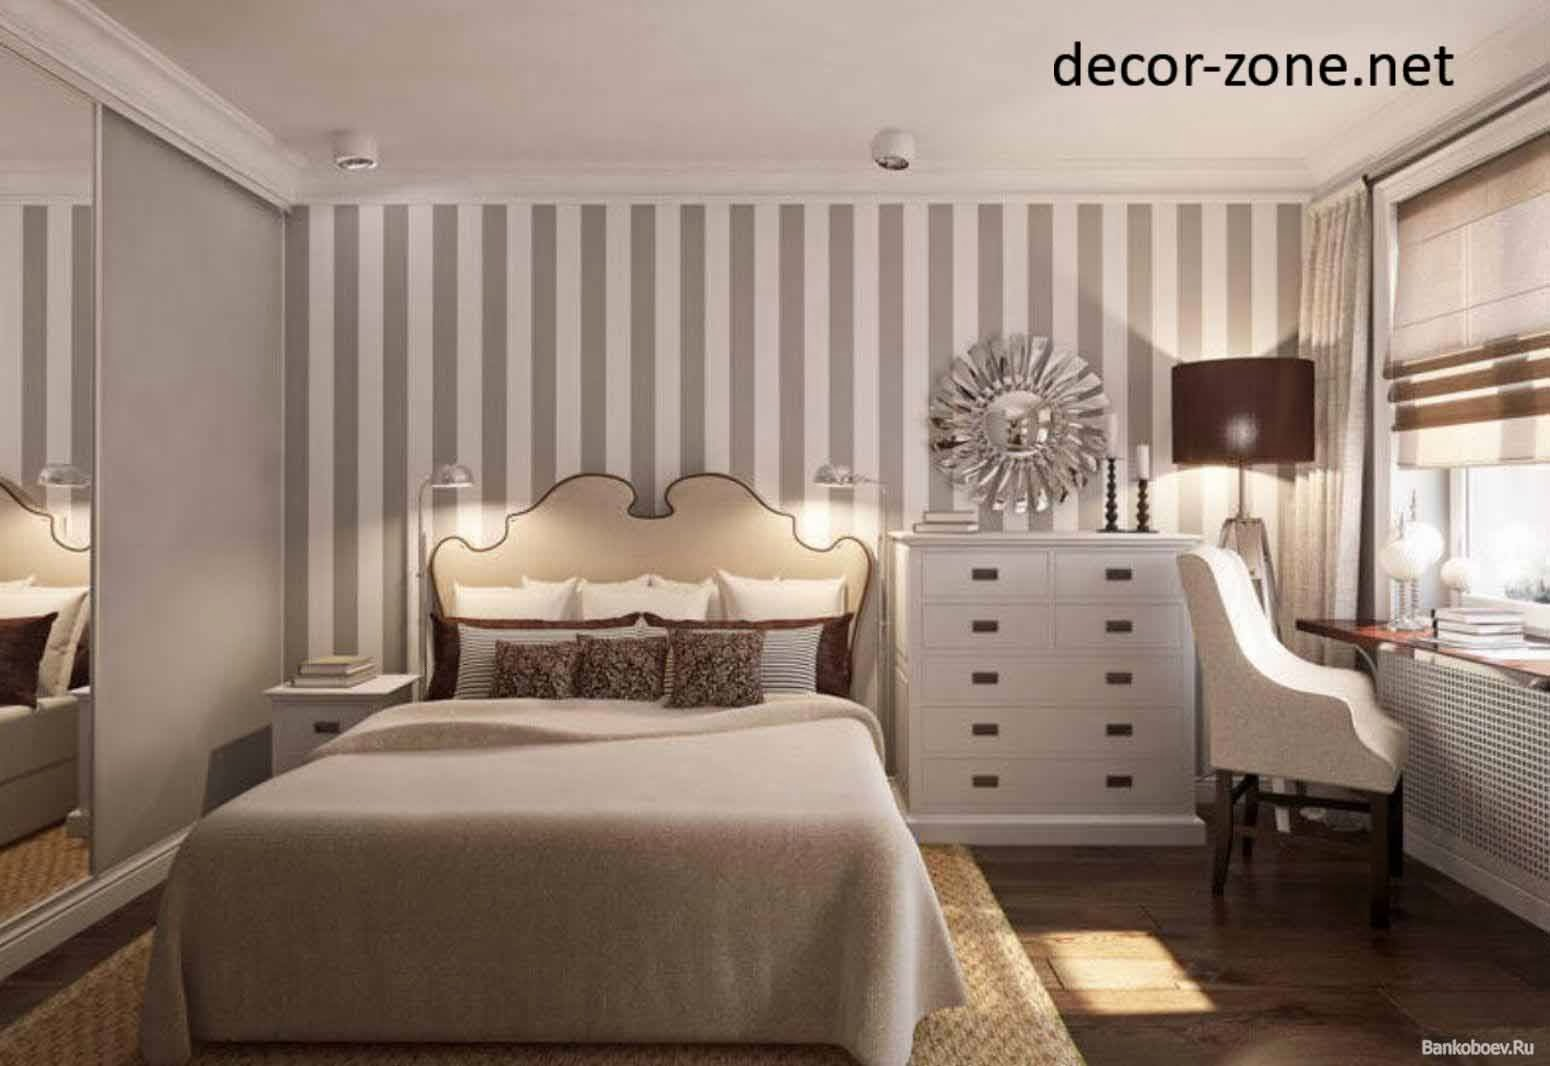 wallpaper ideas for master bedroom wall decor ideas for the master bedroom 20104